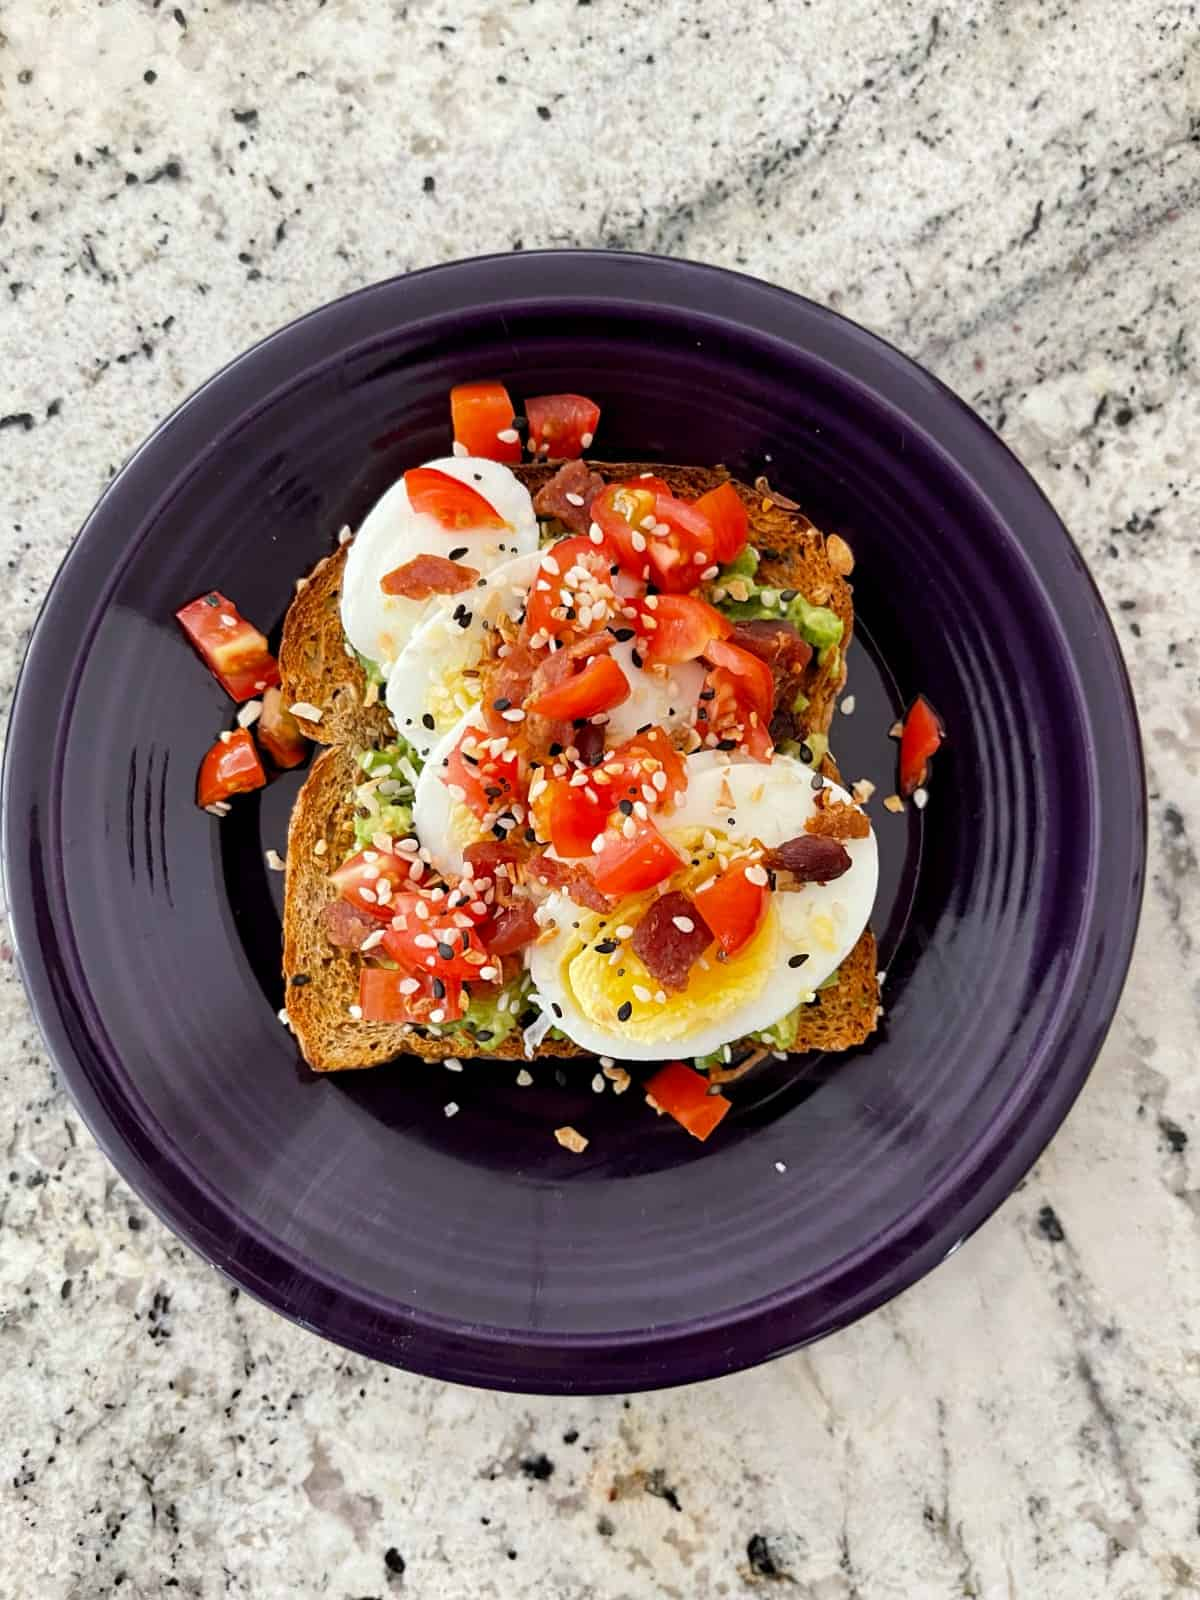 Avocado toast topped with boiled egg slices, bacon, tomato and everything bagel seasoning